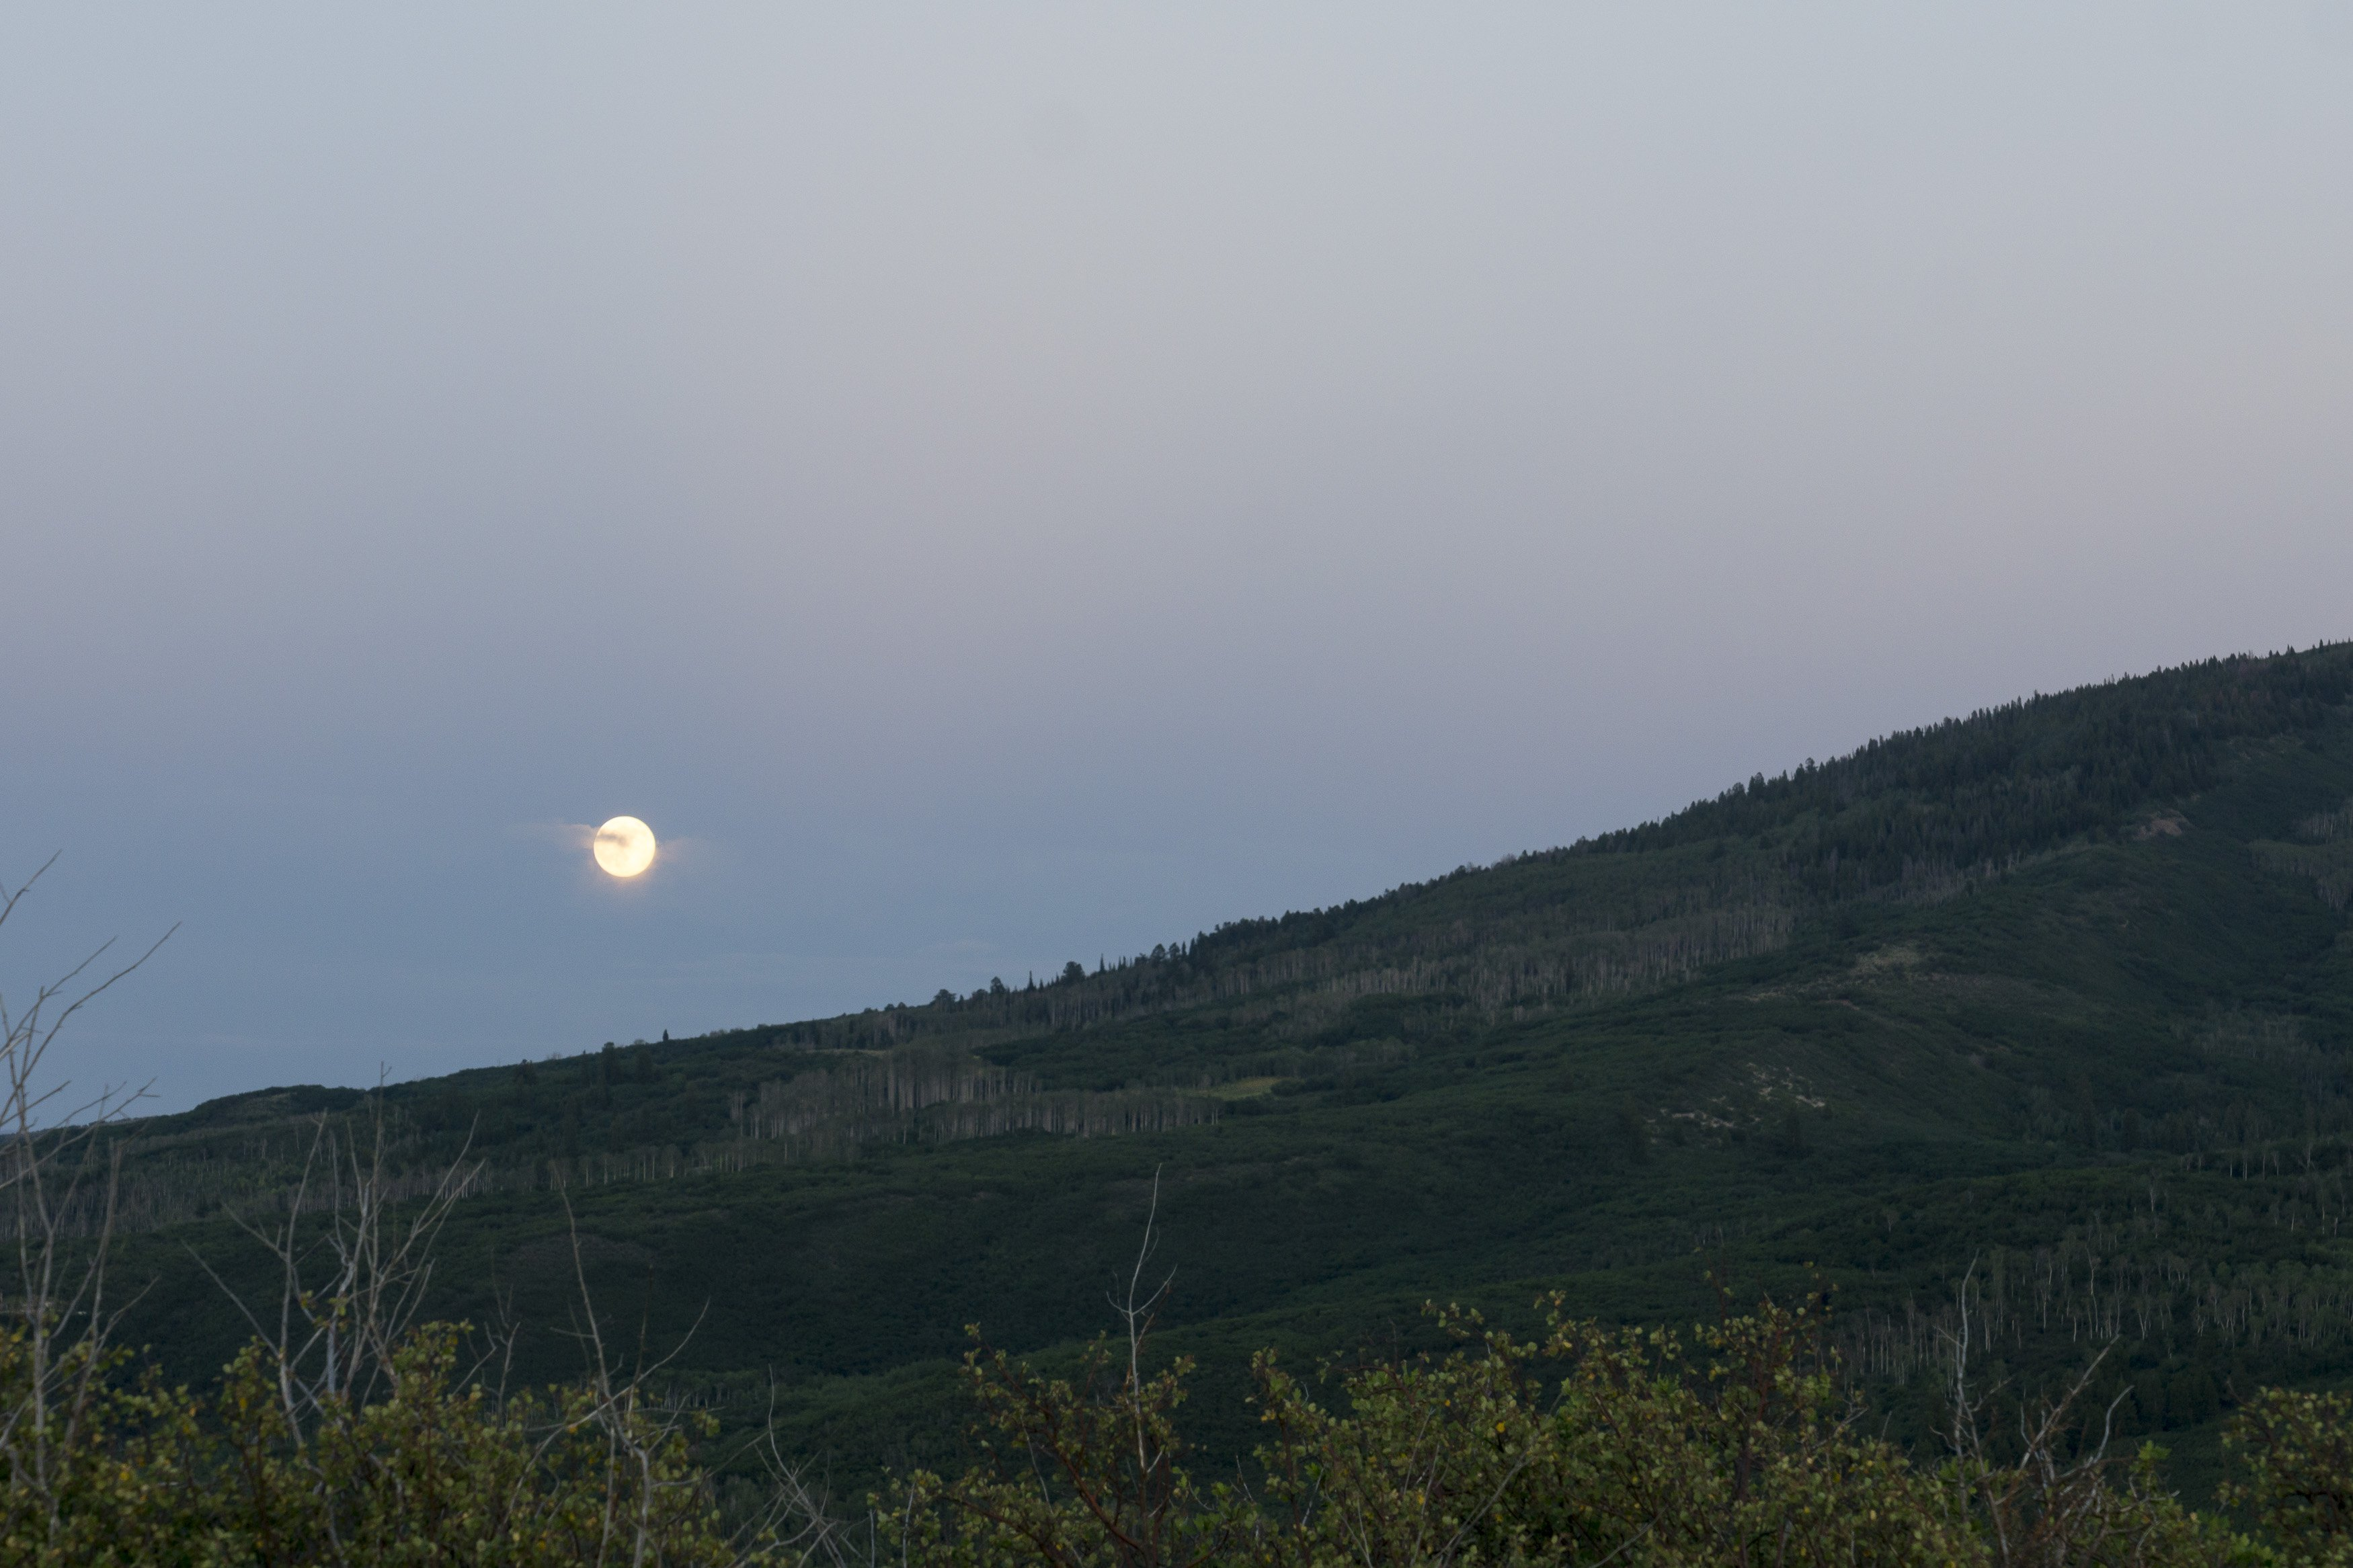 Moonrise over Mount Sopris in Colorado White River National Forest